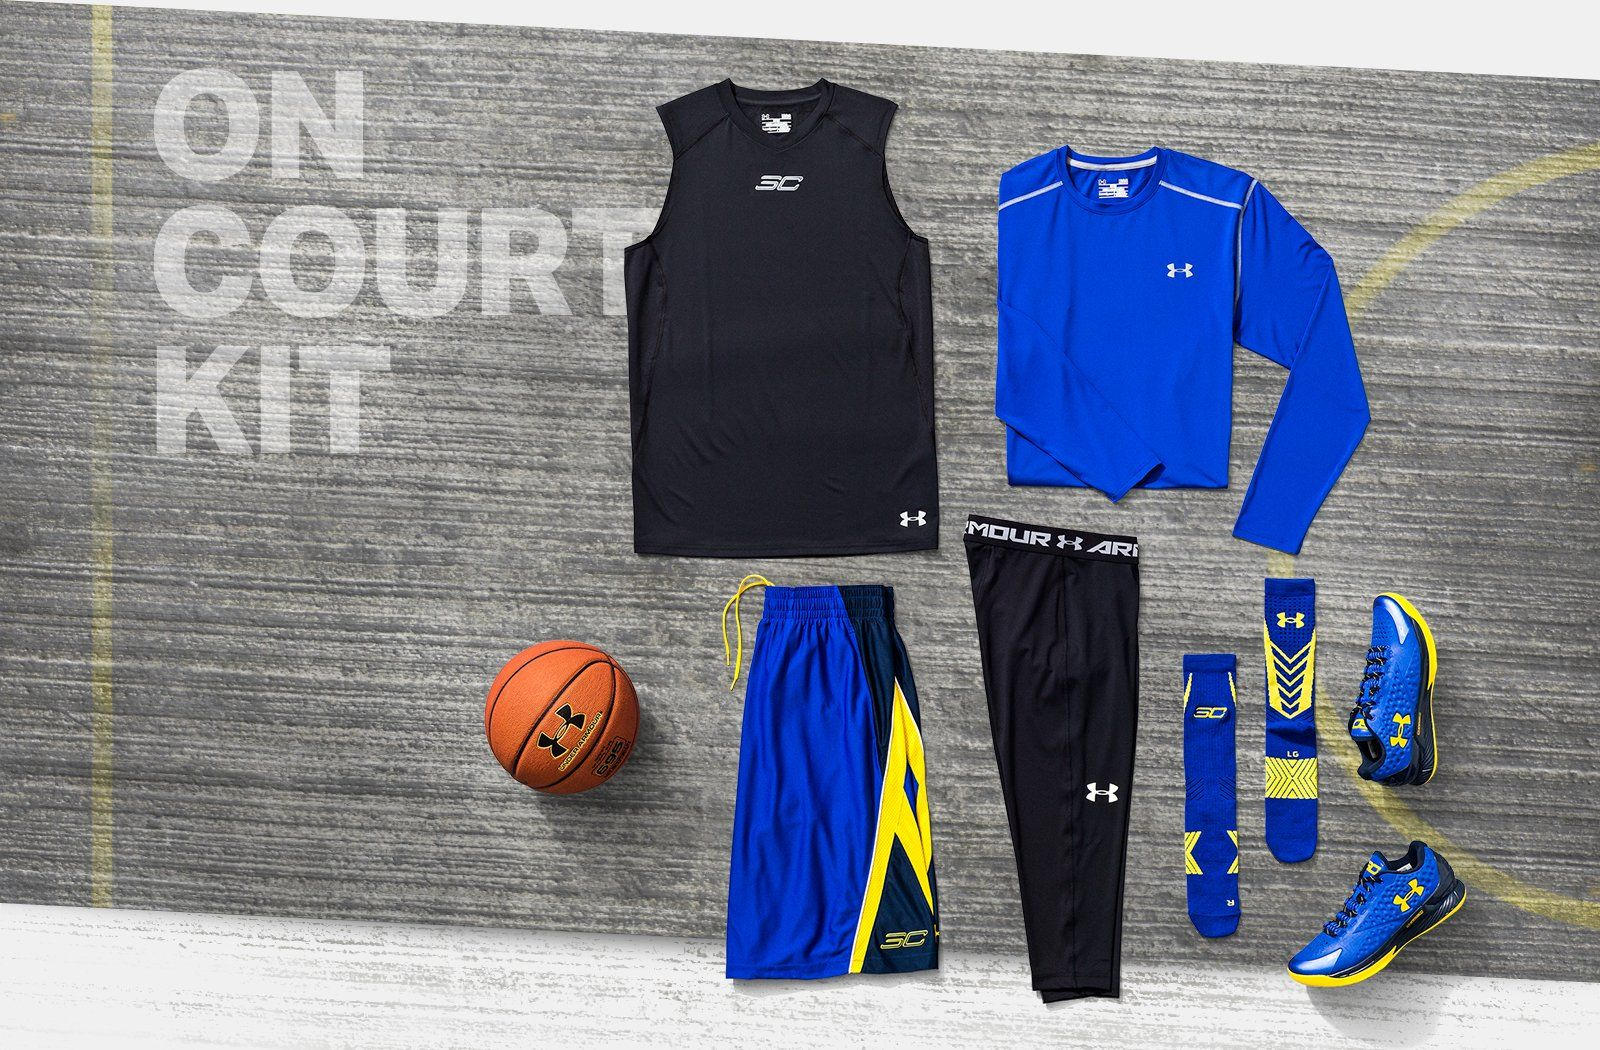 new styles e0679 79e7f On court kit. | Under Armour | Stephen curry shirts, Under ...